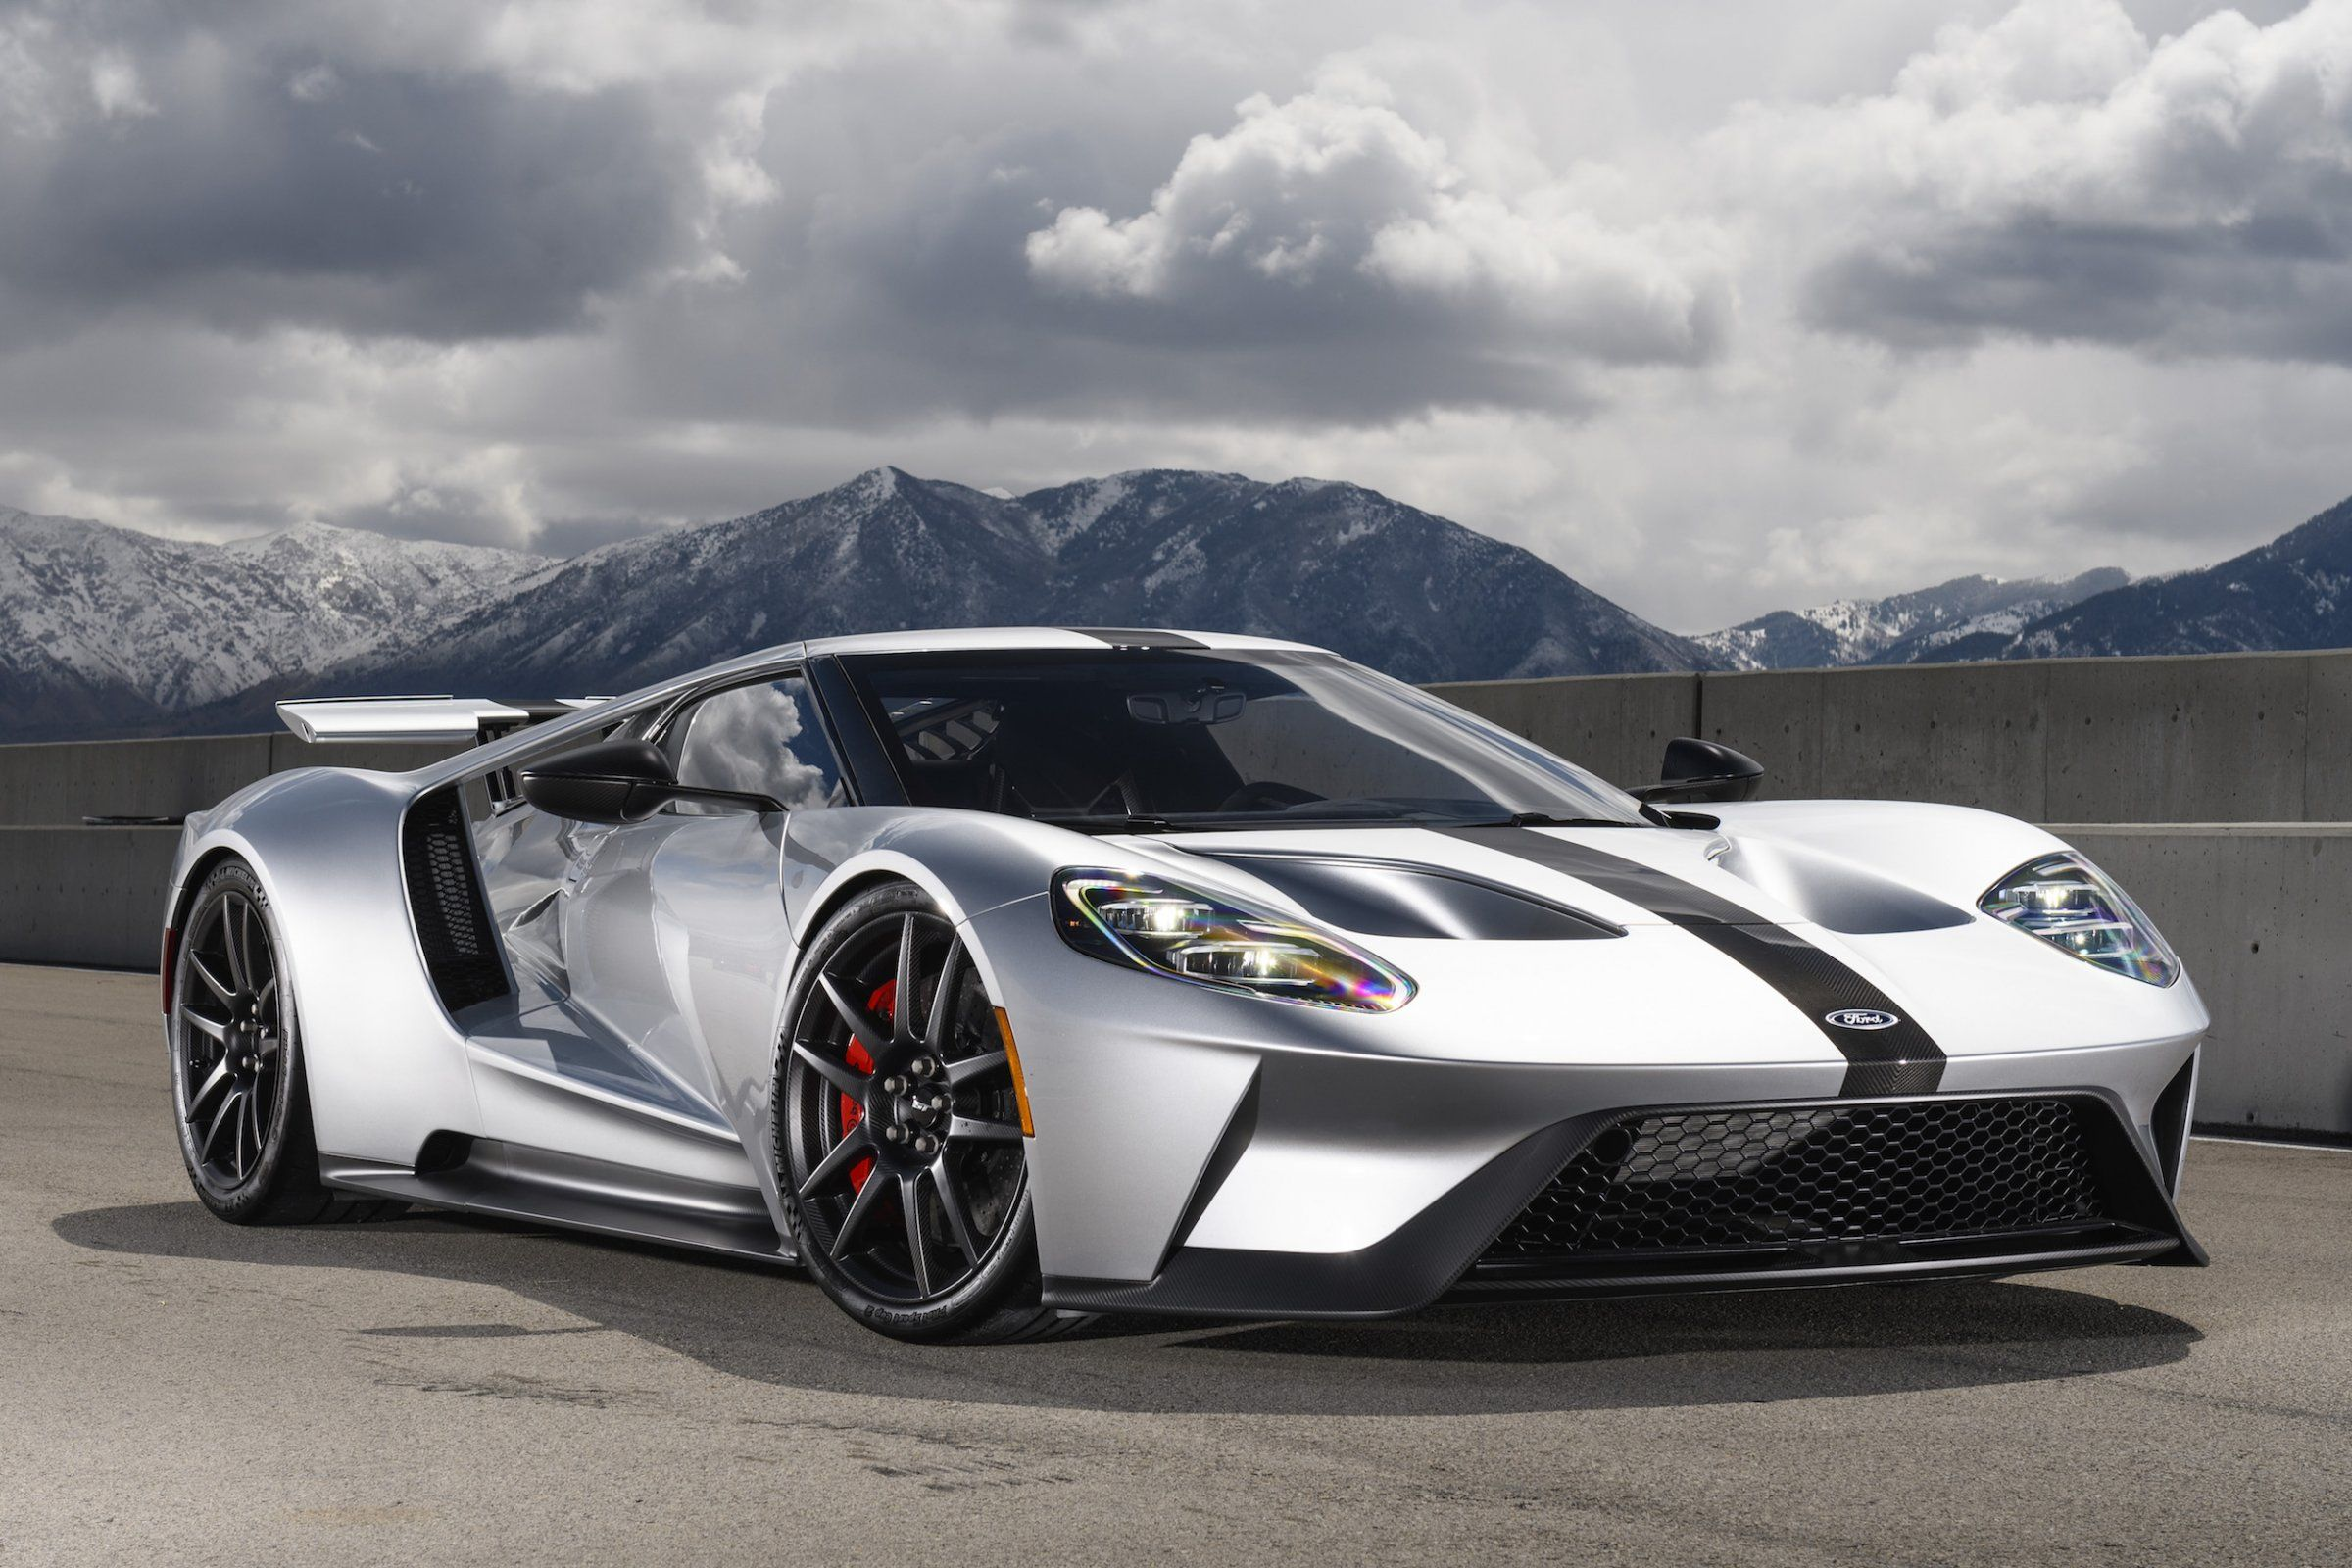 Henry Fords Great Great Grandson Says The Company Learned  Key Things From Making Its  Gt Supercar